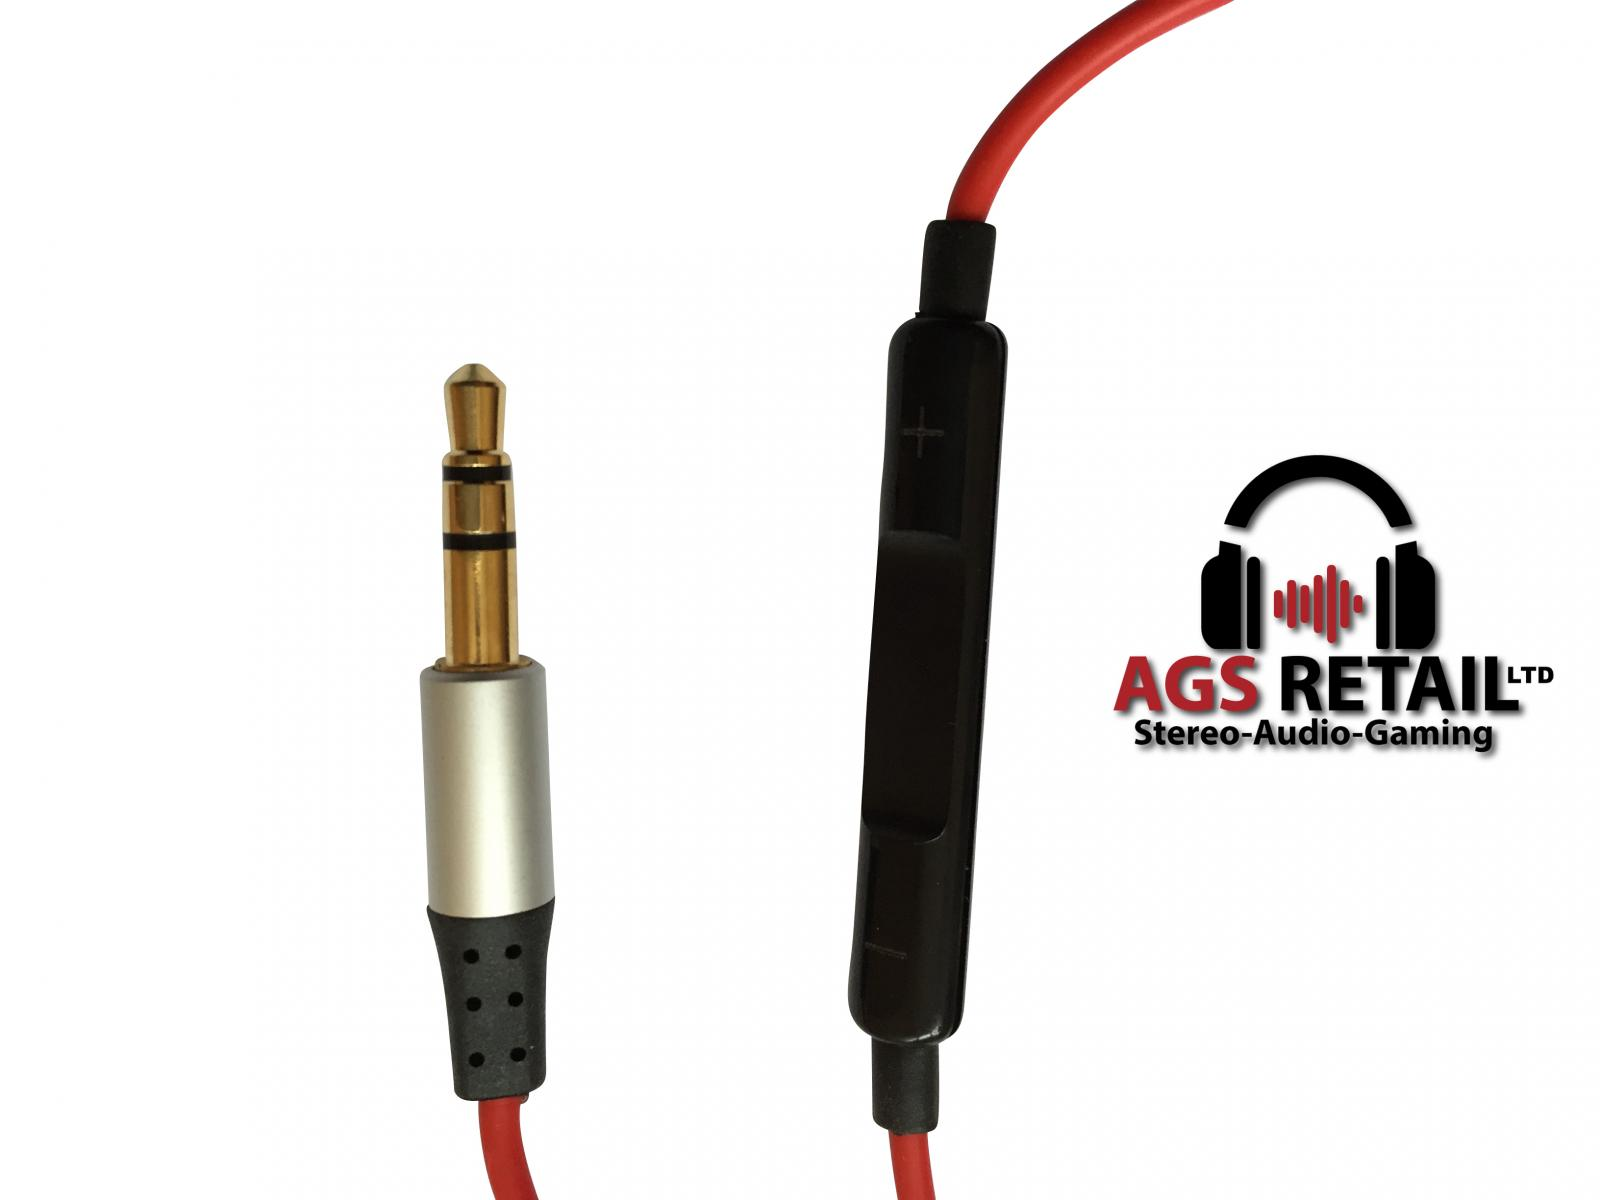 Skullcandy Audio Cable : Red replacement audio cable for skullcandy hesh